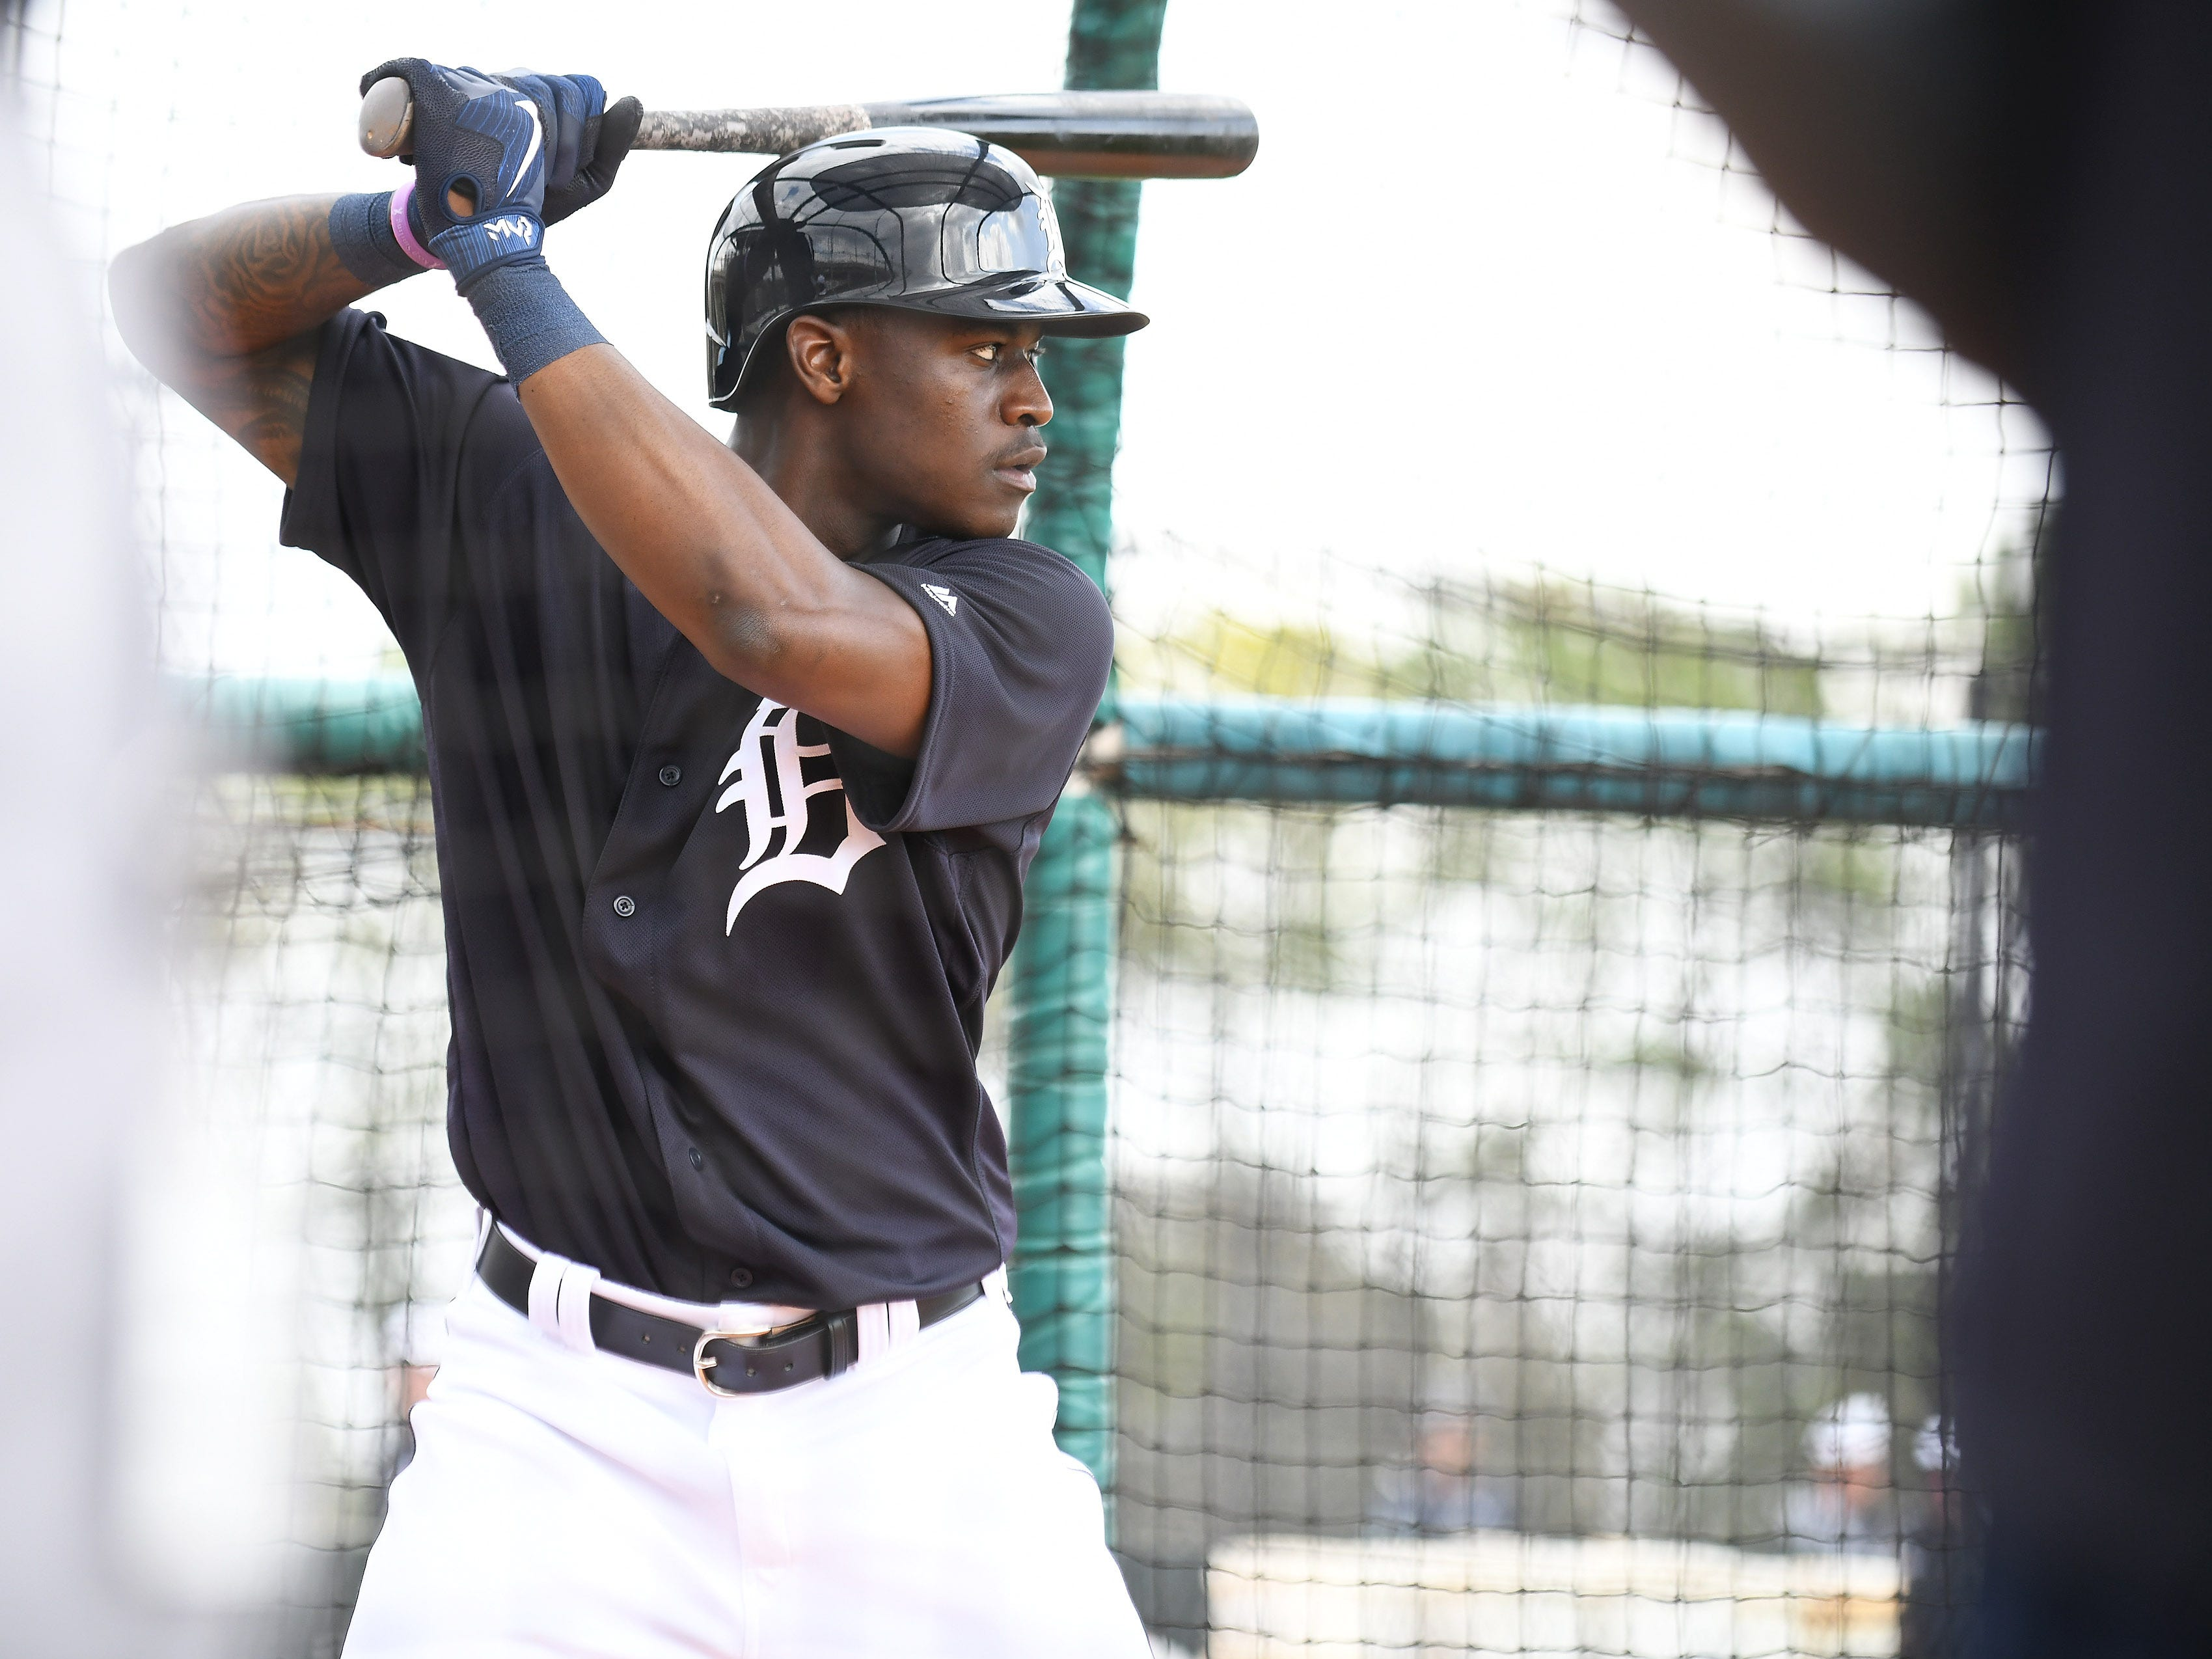 Tigers prospect and non-roster invitee Daz Cameron takes batting practice.